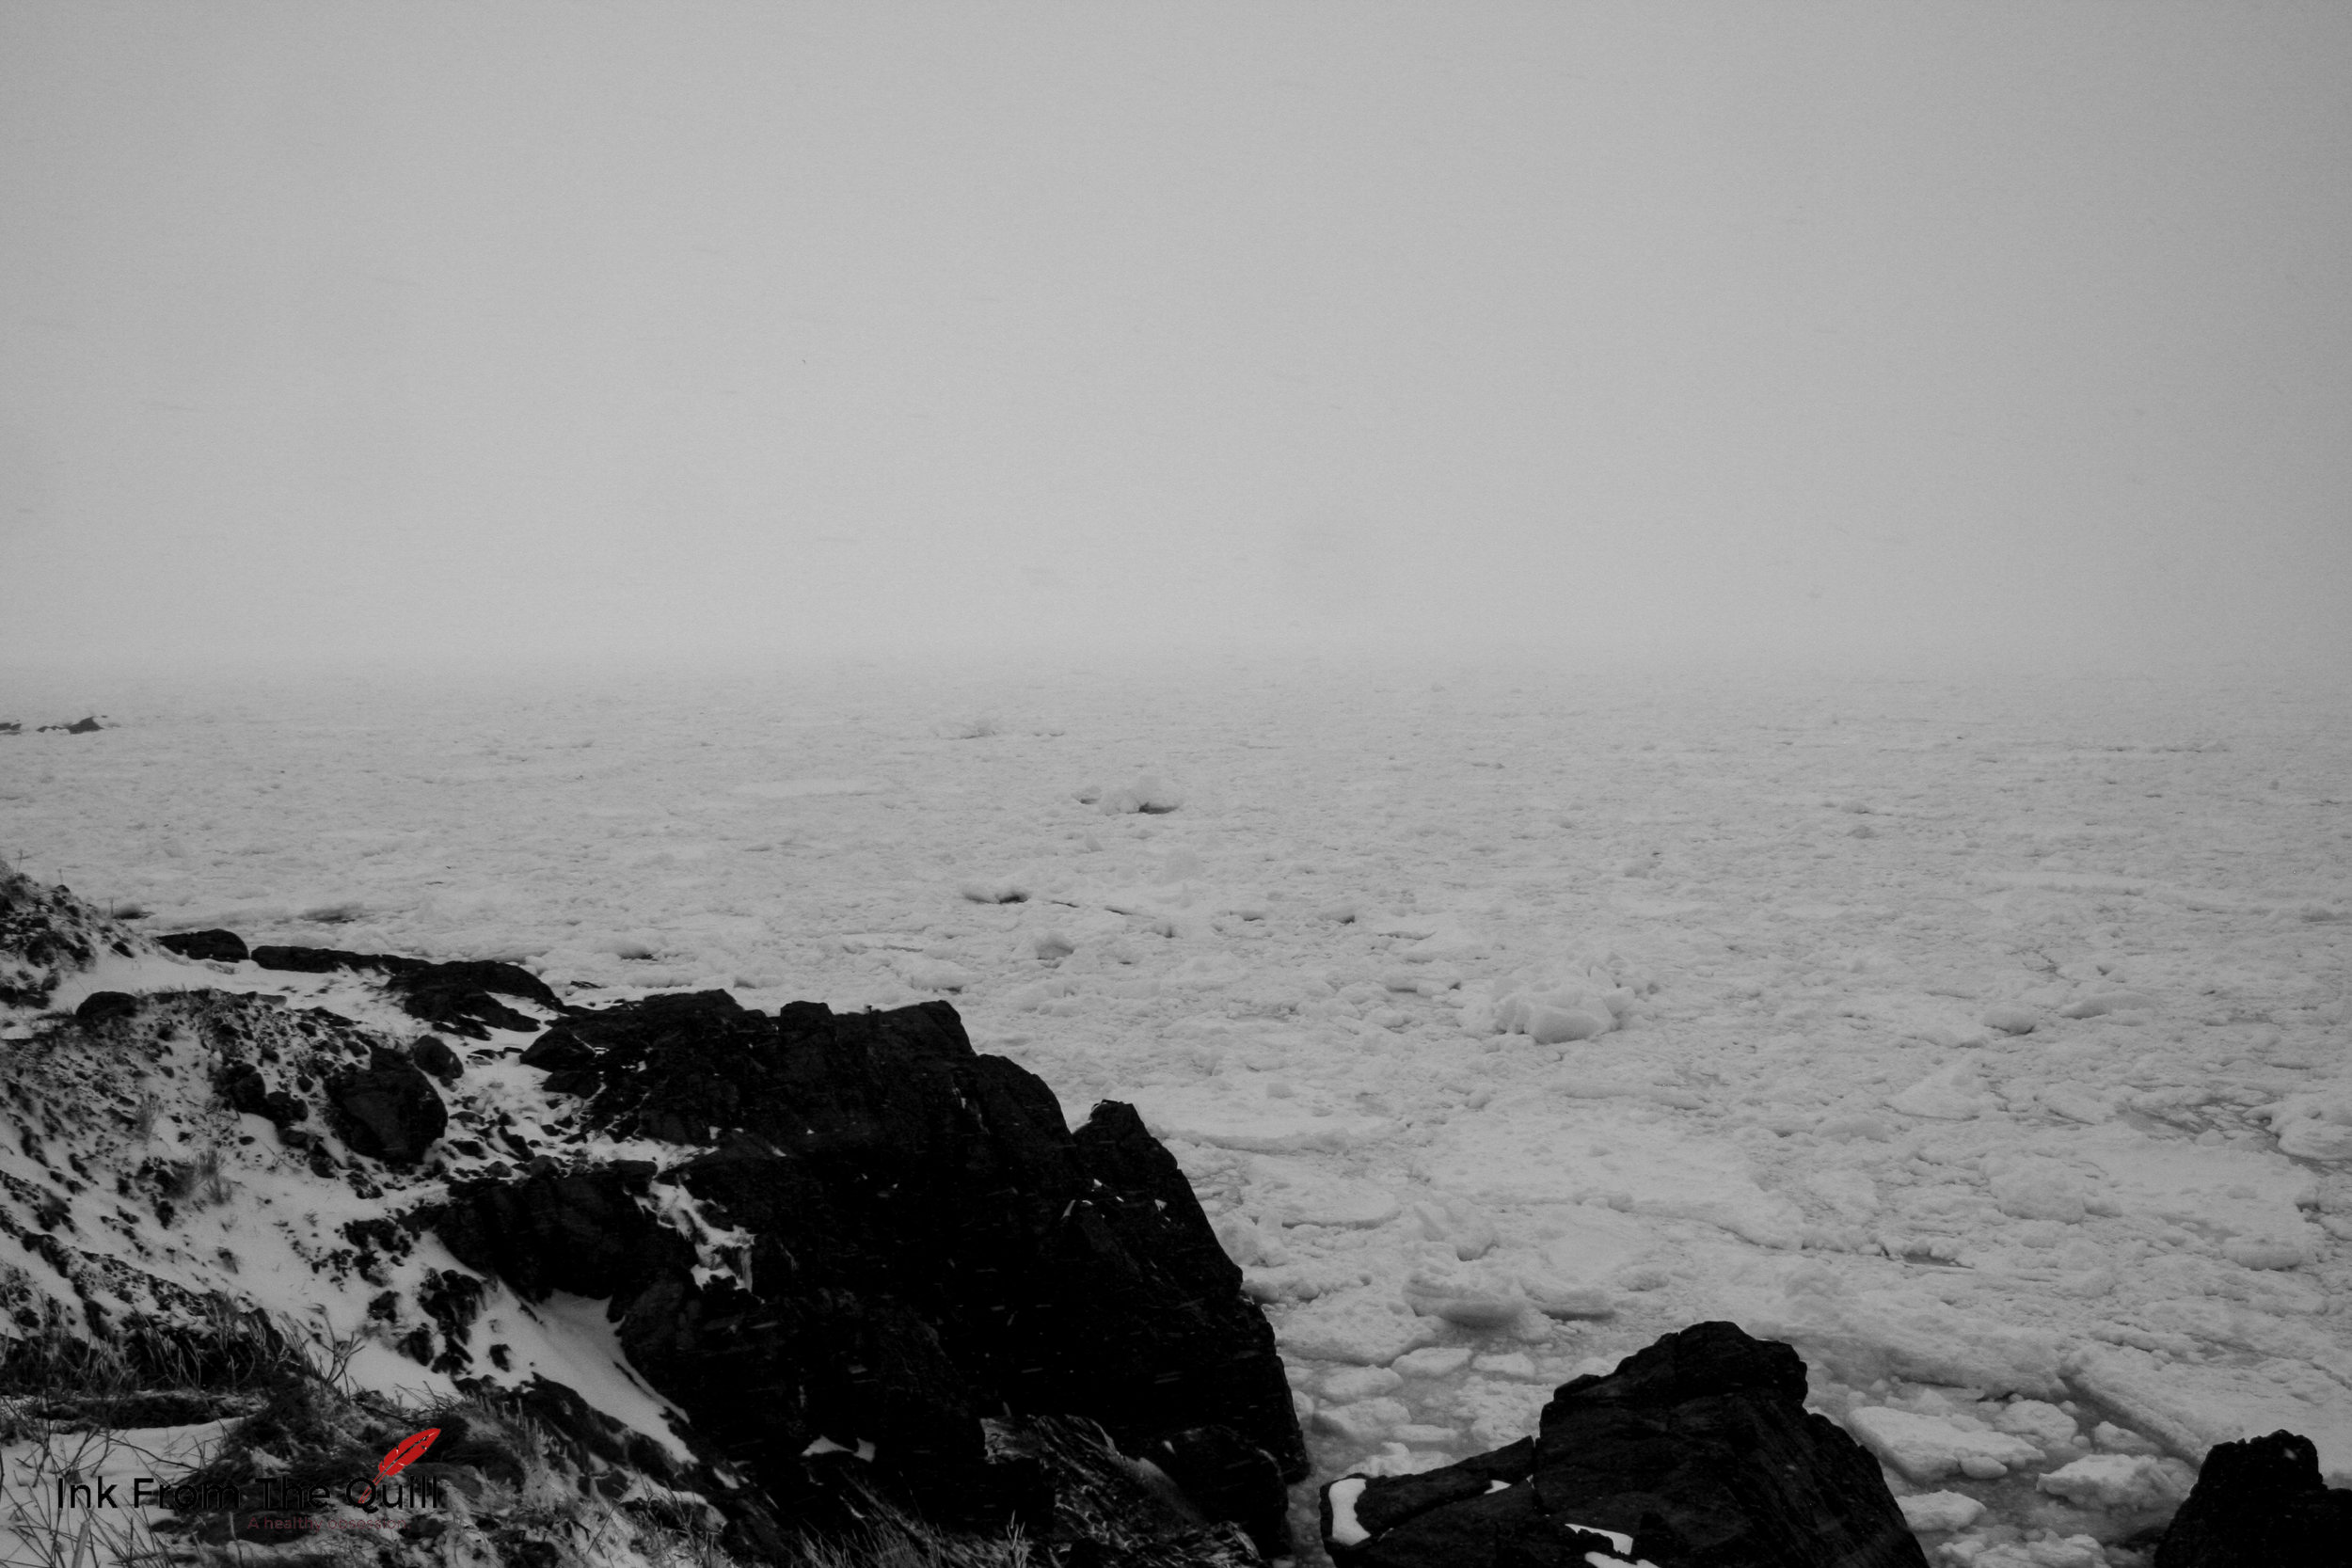 Sea ice in Portugal Cove, Newfoundland - All the black specks on the ice are Harp Seals